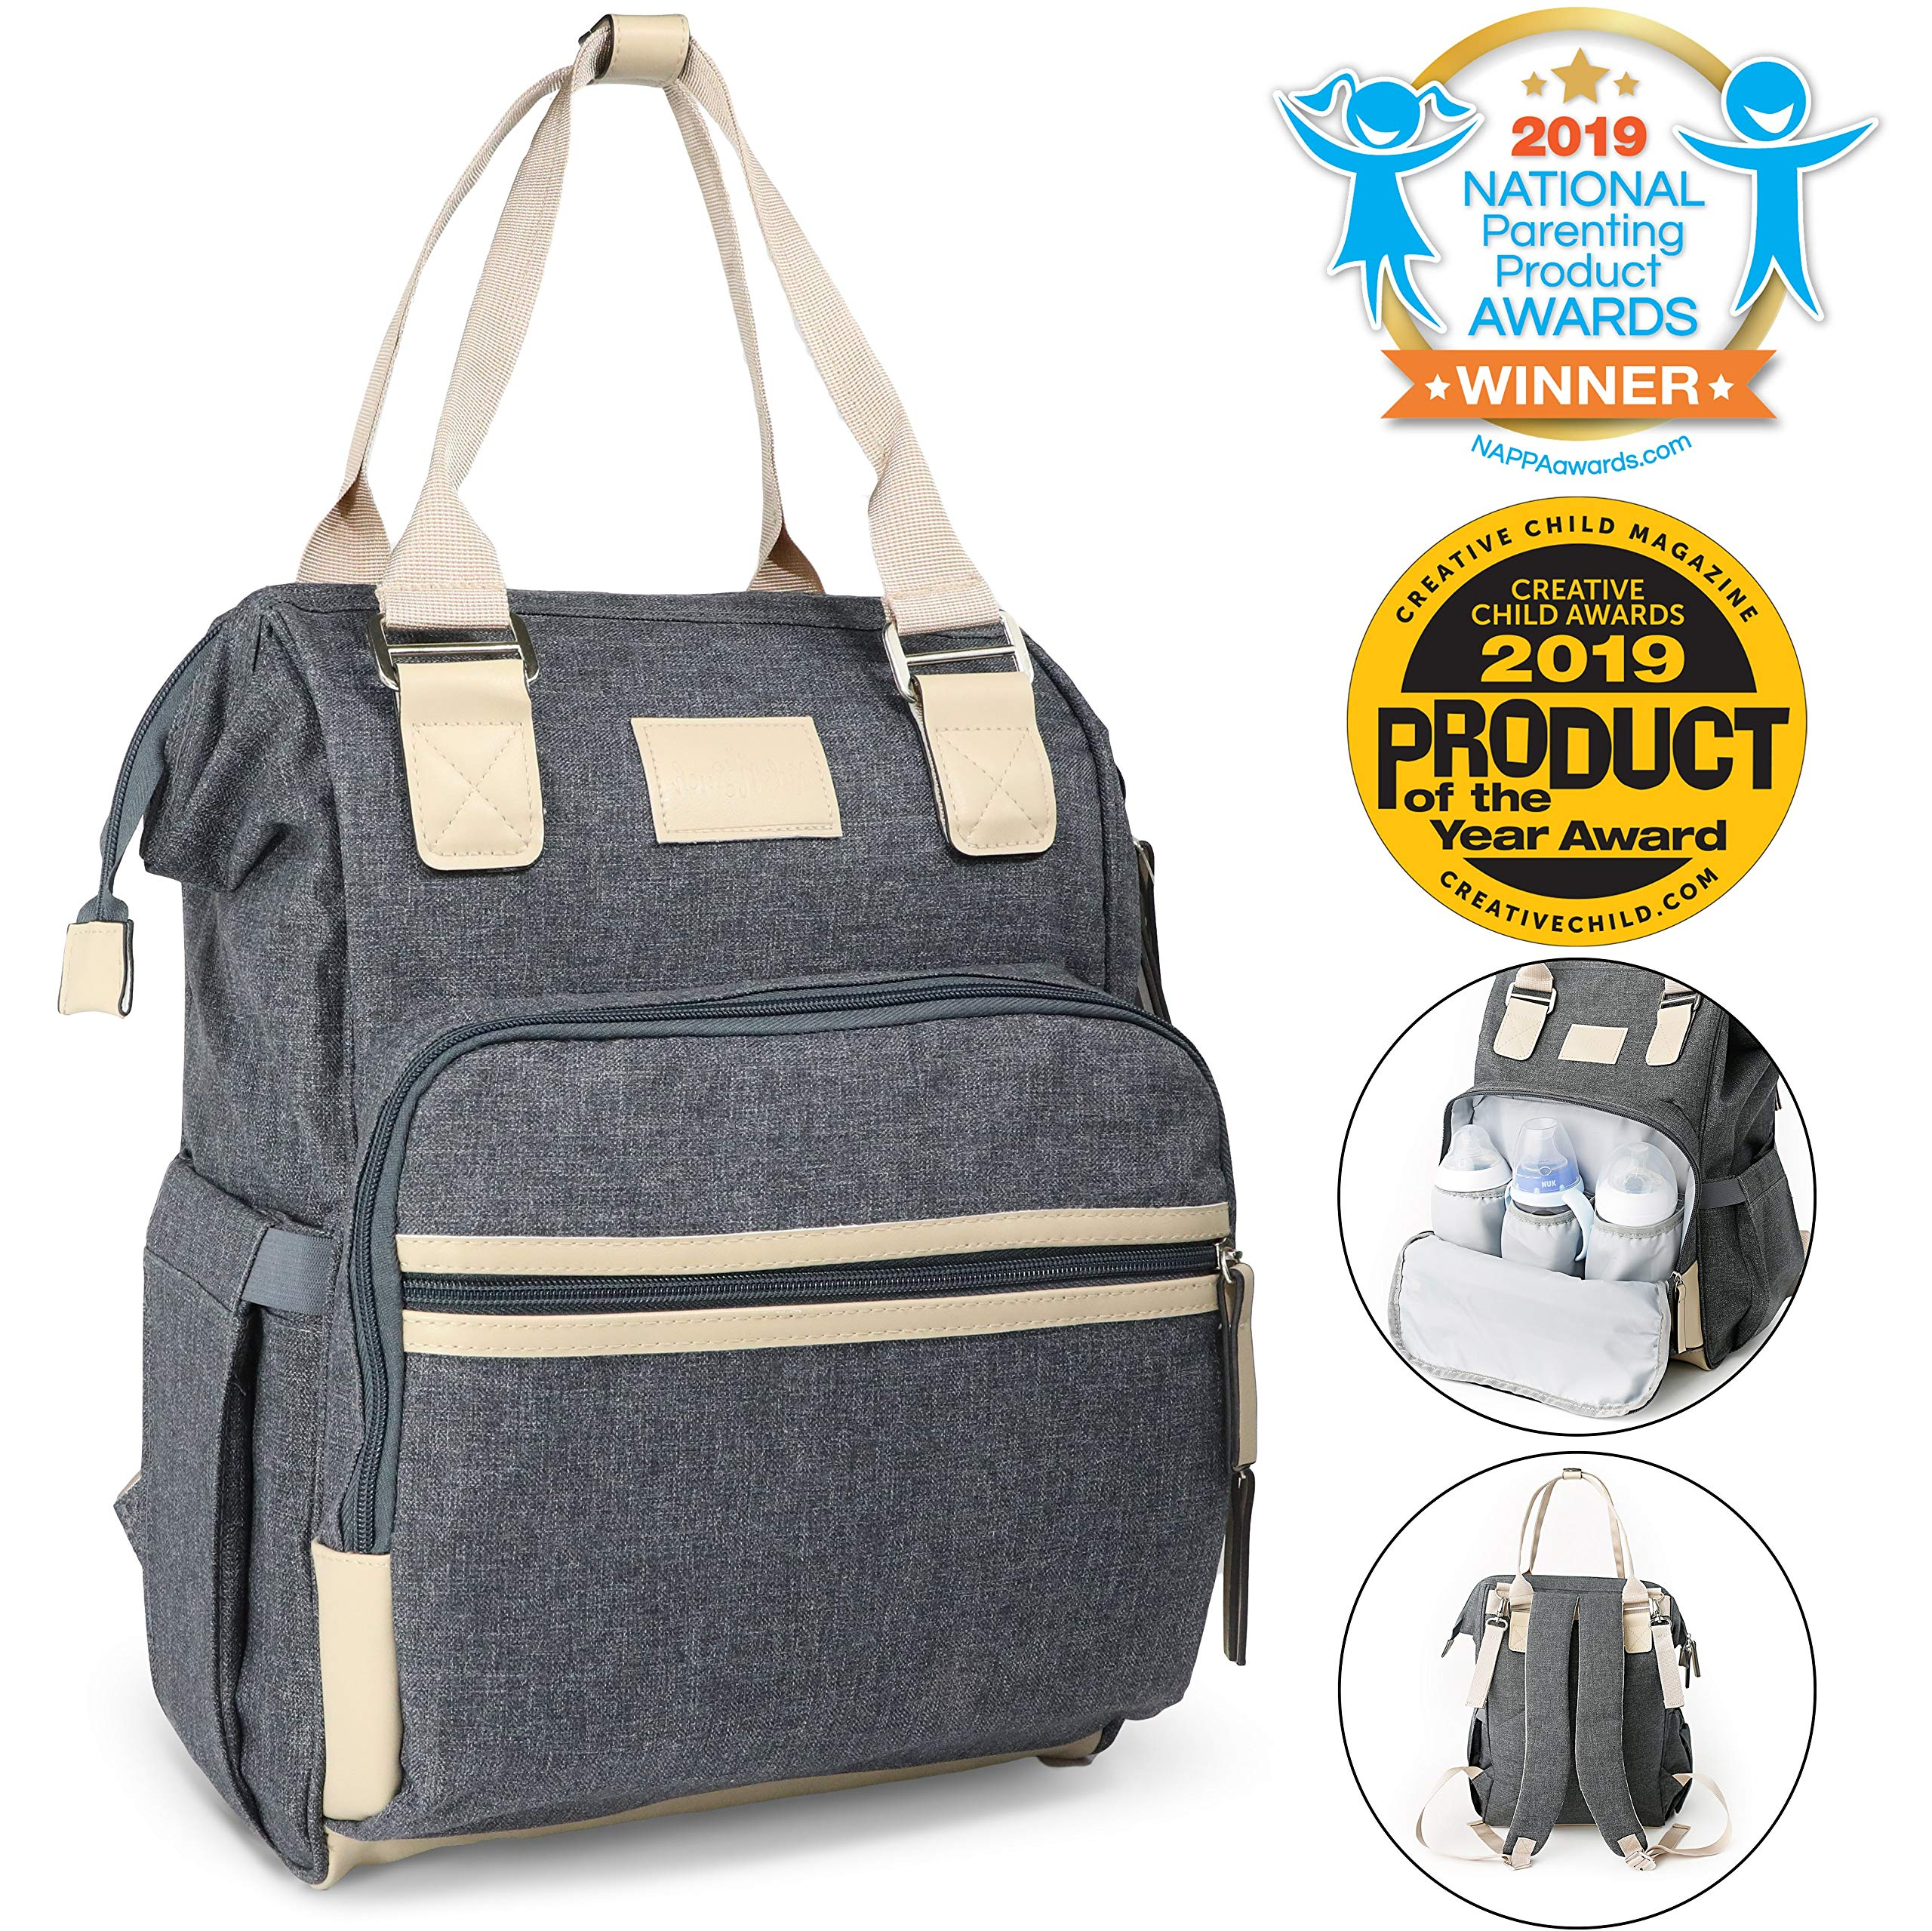 Diaper Bag Backpack, Kids N' Such Multifunction Travel Back Pack Large Baby Bag by KIds N' Such